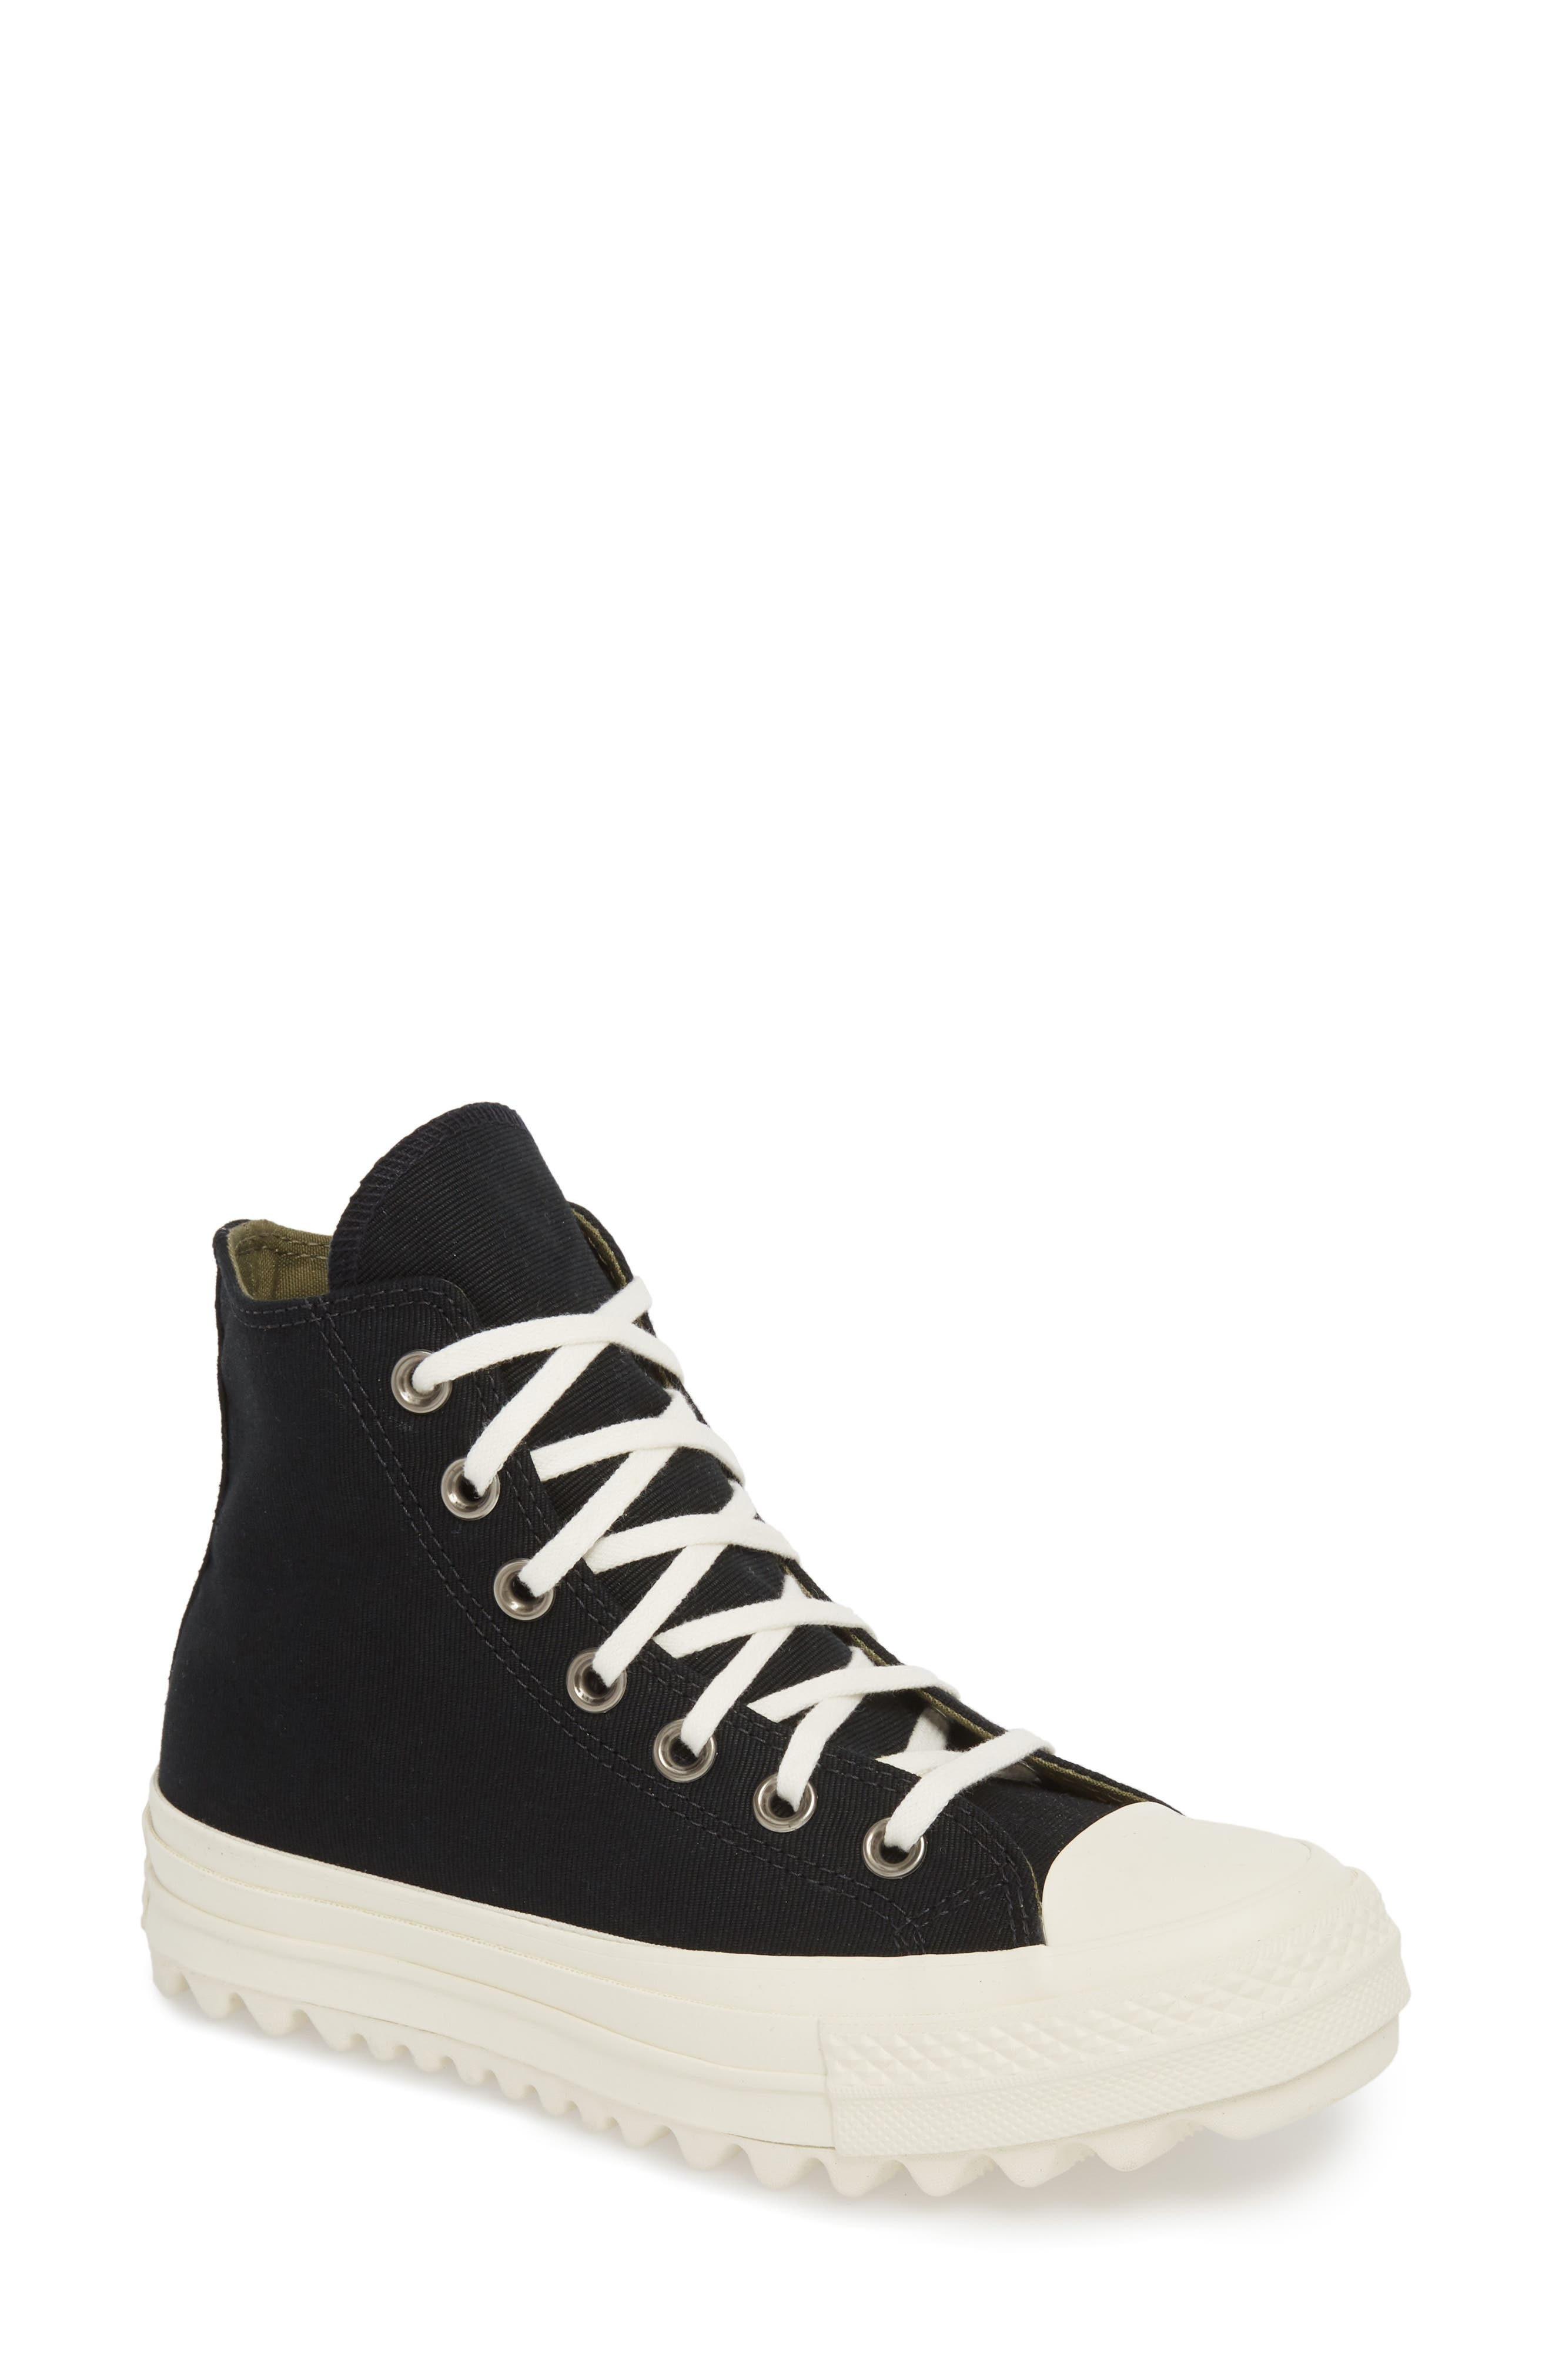 Chuck Taylor<sup>®</sup> All Star<sup>®</sup> Ripple High Top Sneaker,                         Main,                         color, 001